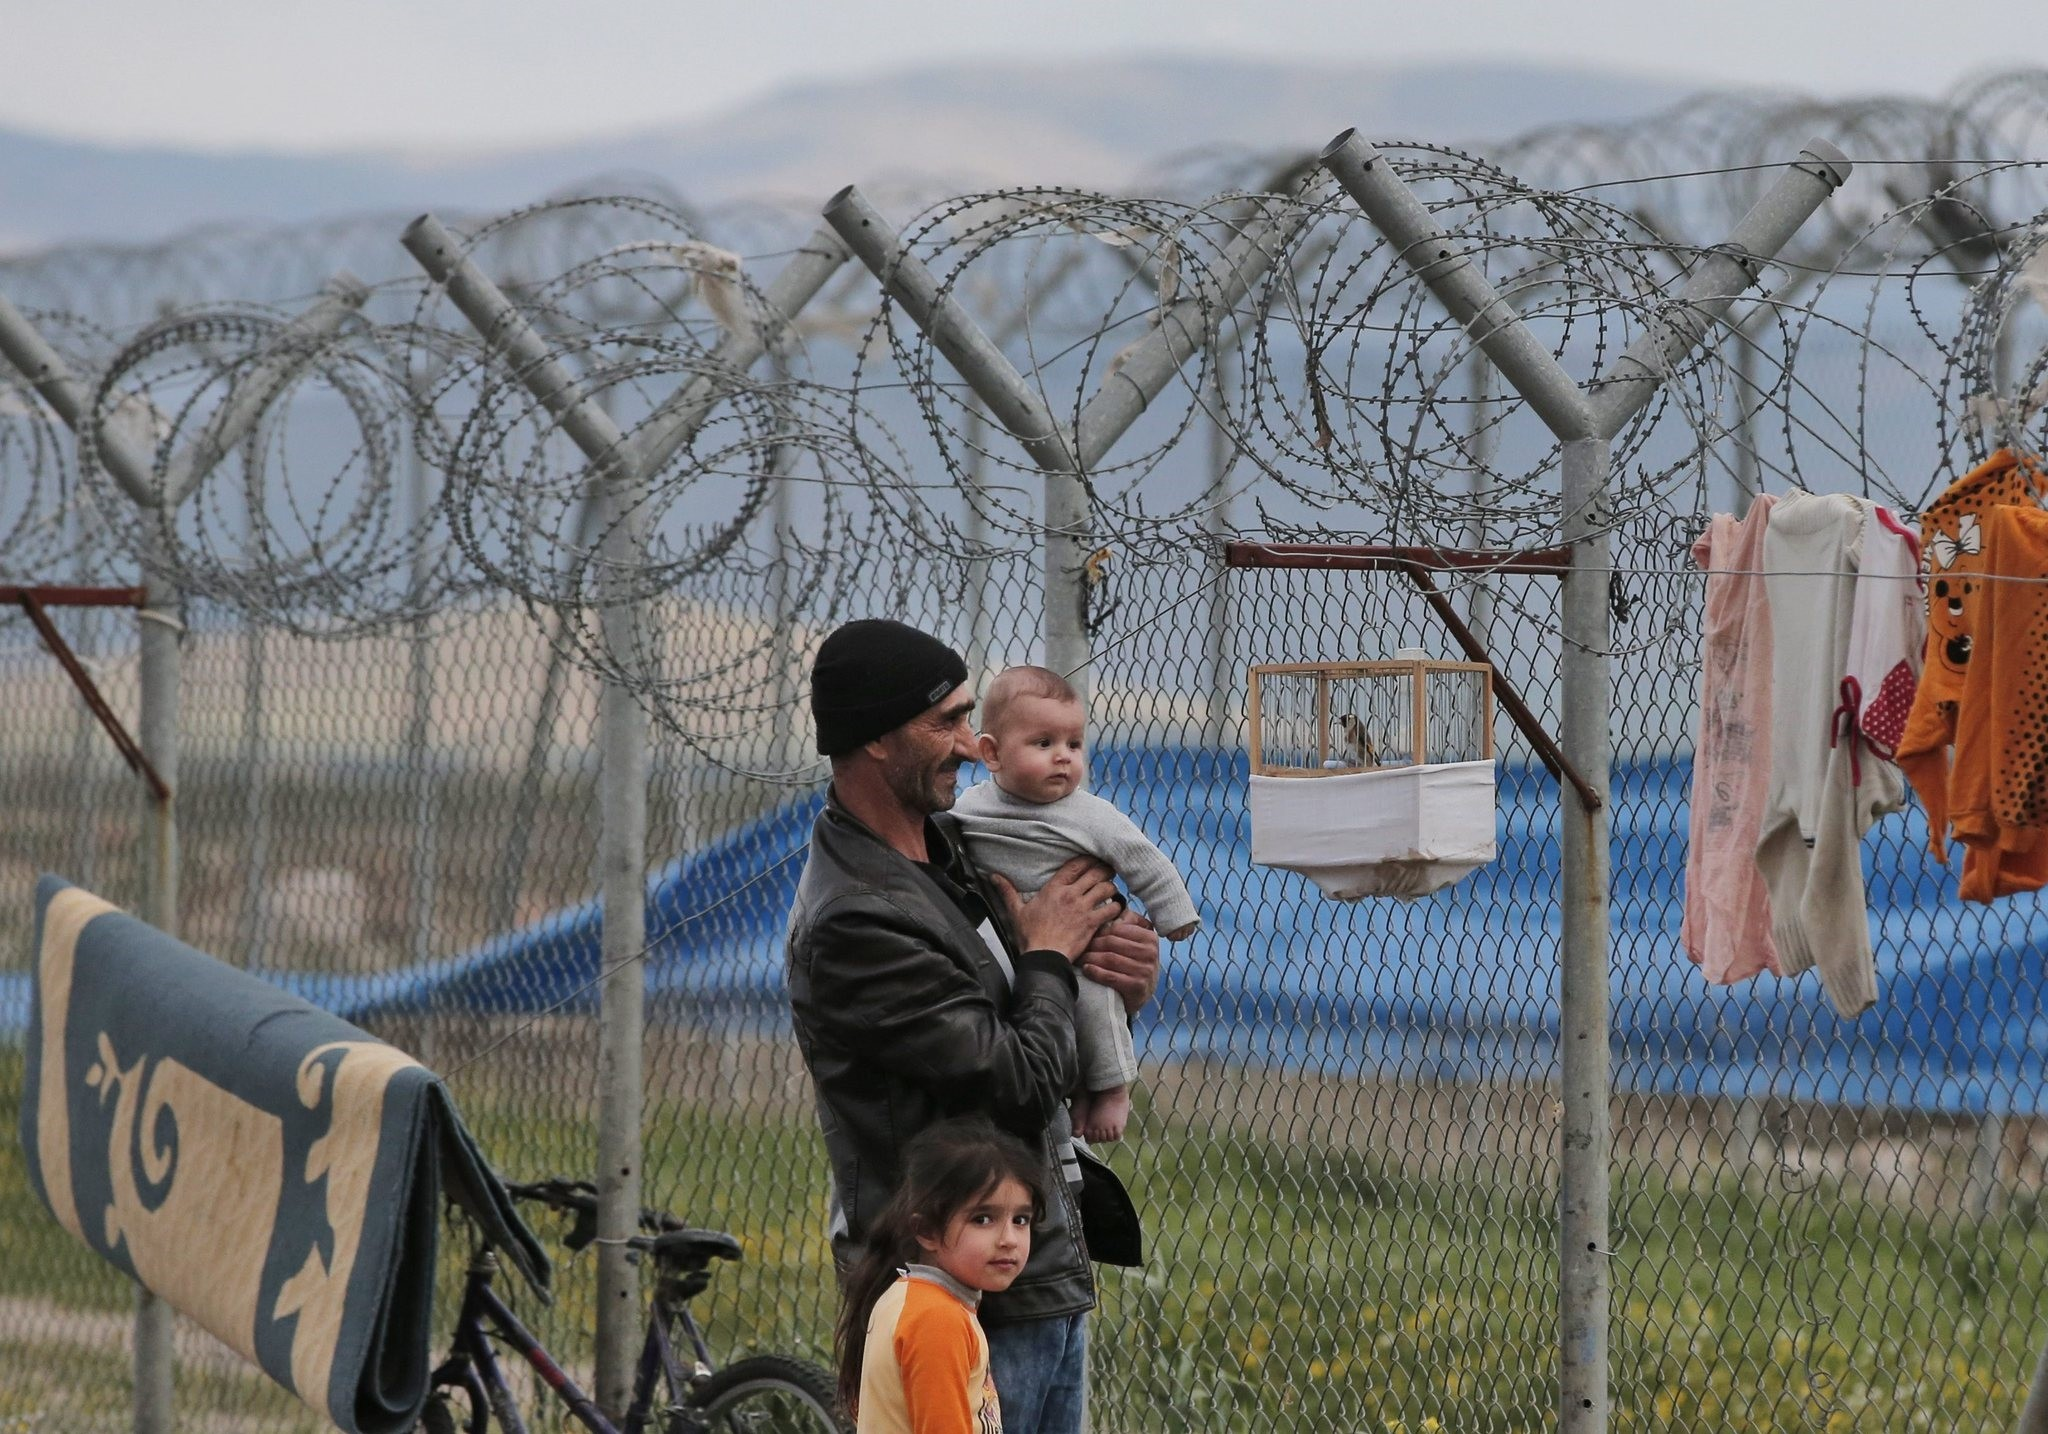 This is a Wednesday, March 16, 2016 file photo of Syrian refugee Abdullah Koca, 43, who fled Syria four-years ago and had been living at a refugee camp for Syrian refugees in Islahiye, Gaziantep province. (AP Photo)